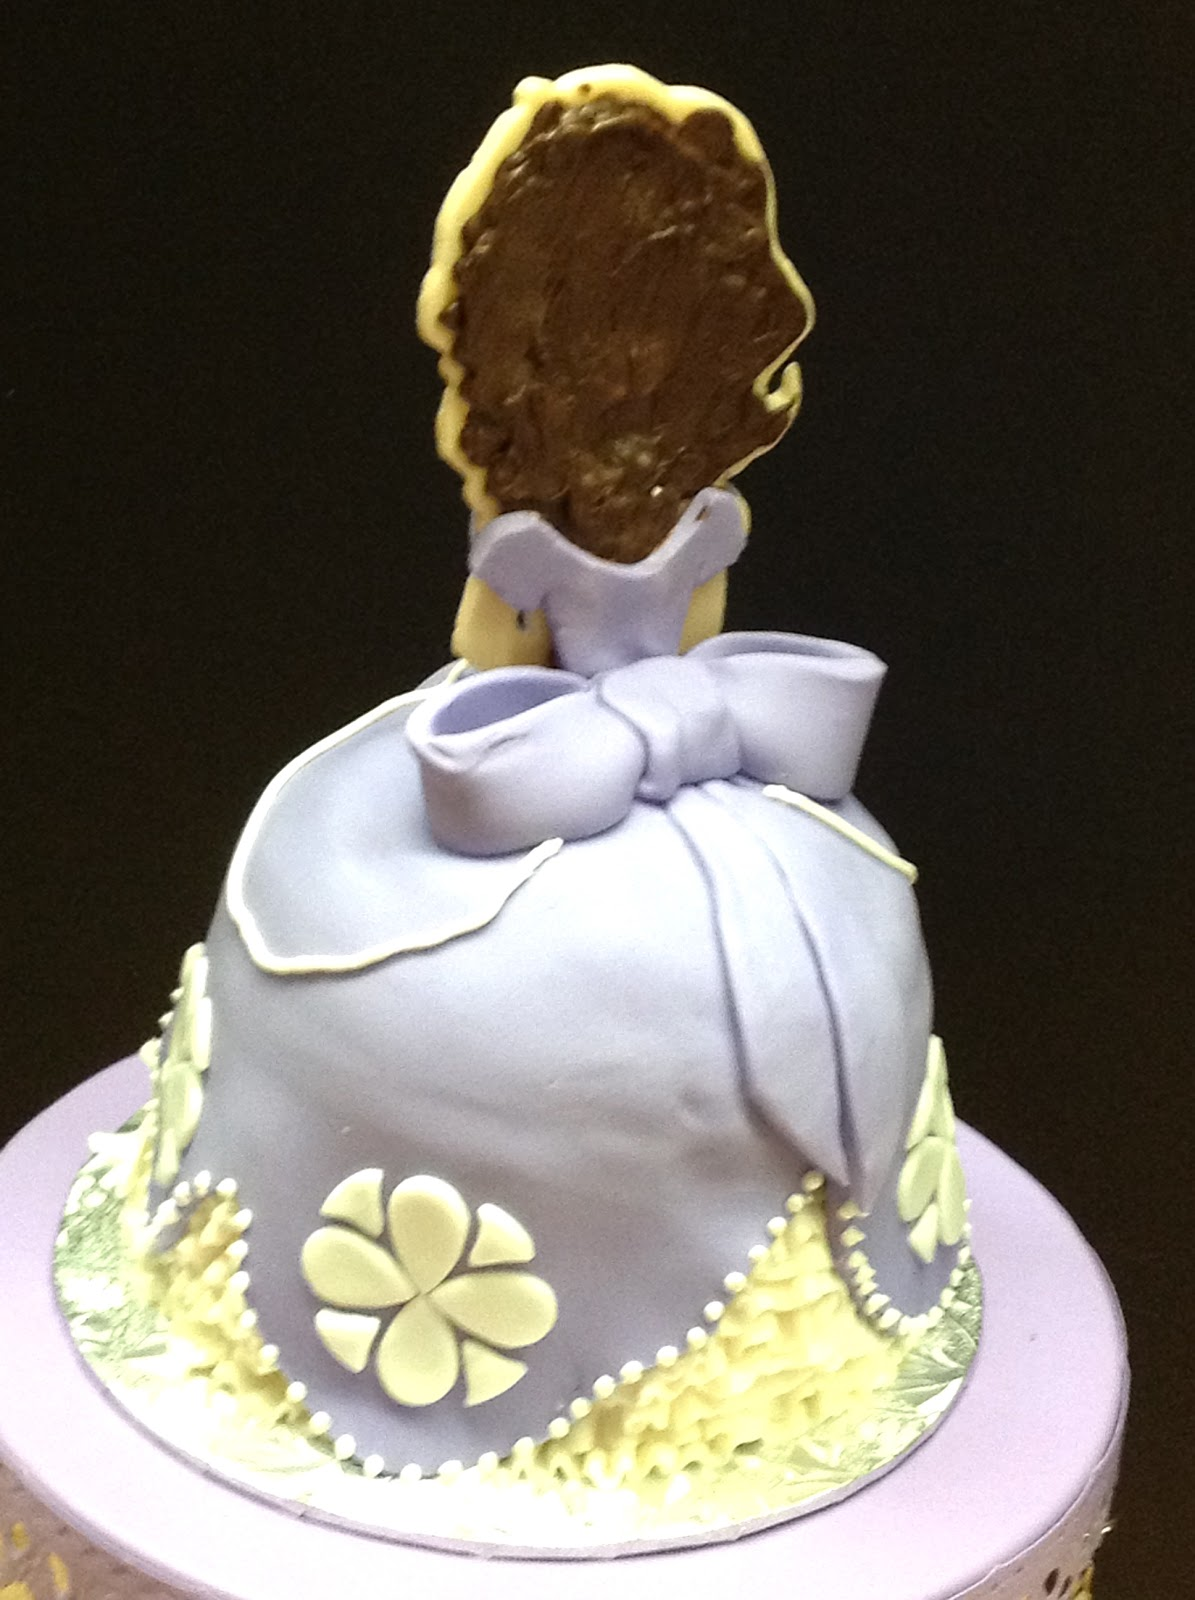 Plumeria Cake Studio: Sofia the First Cake and Cupcakes